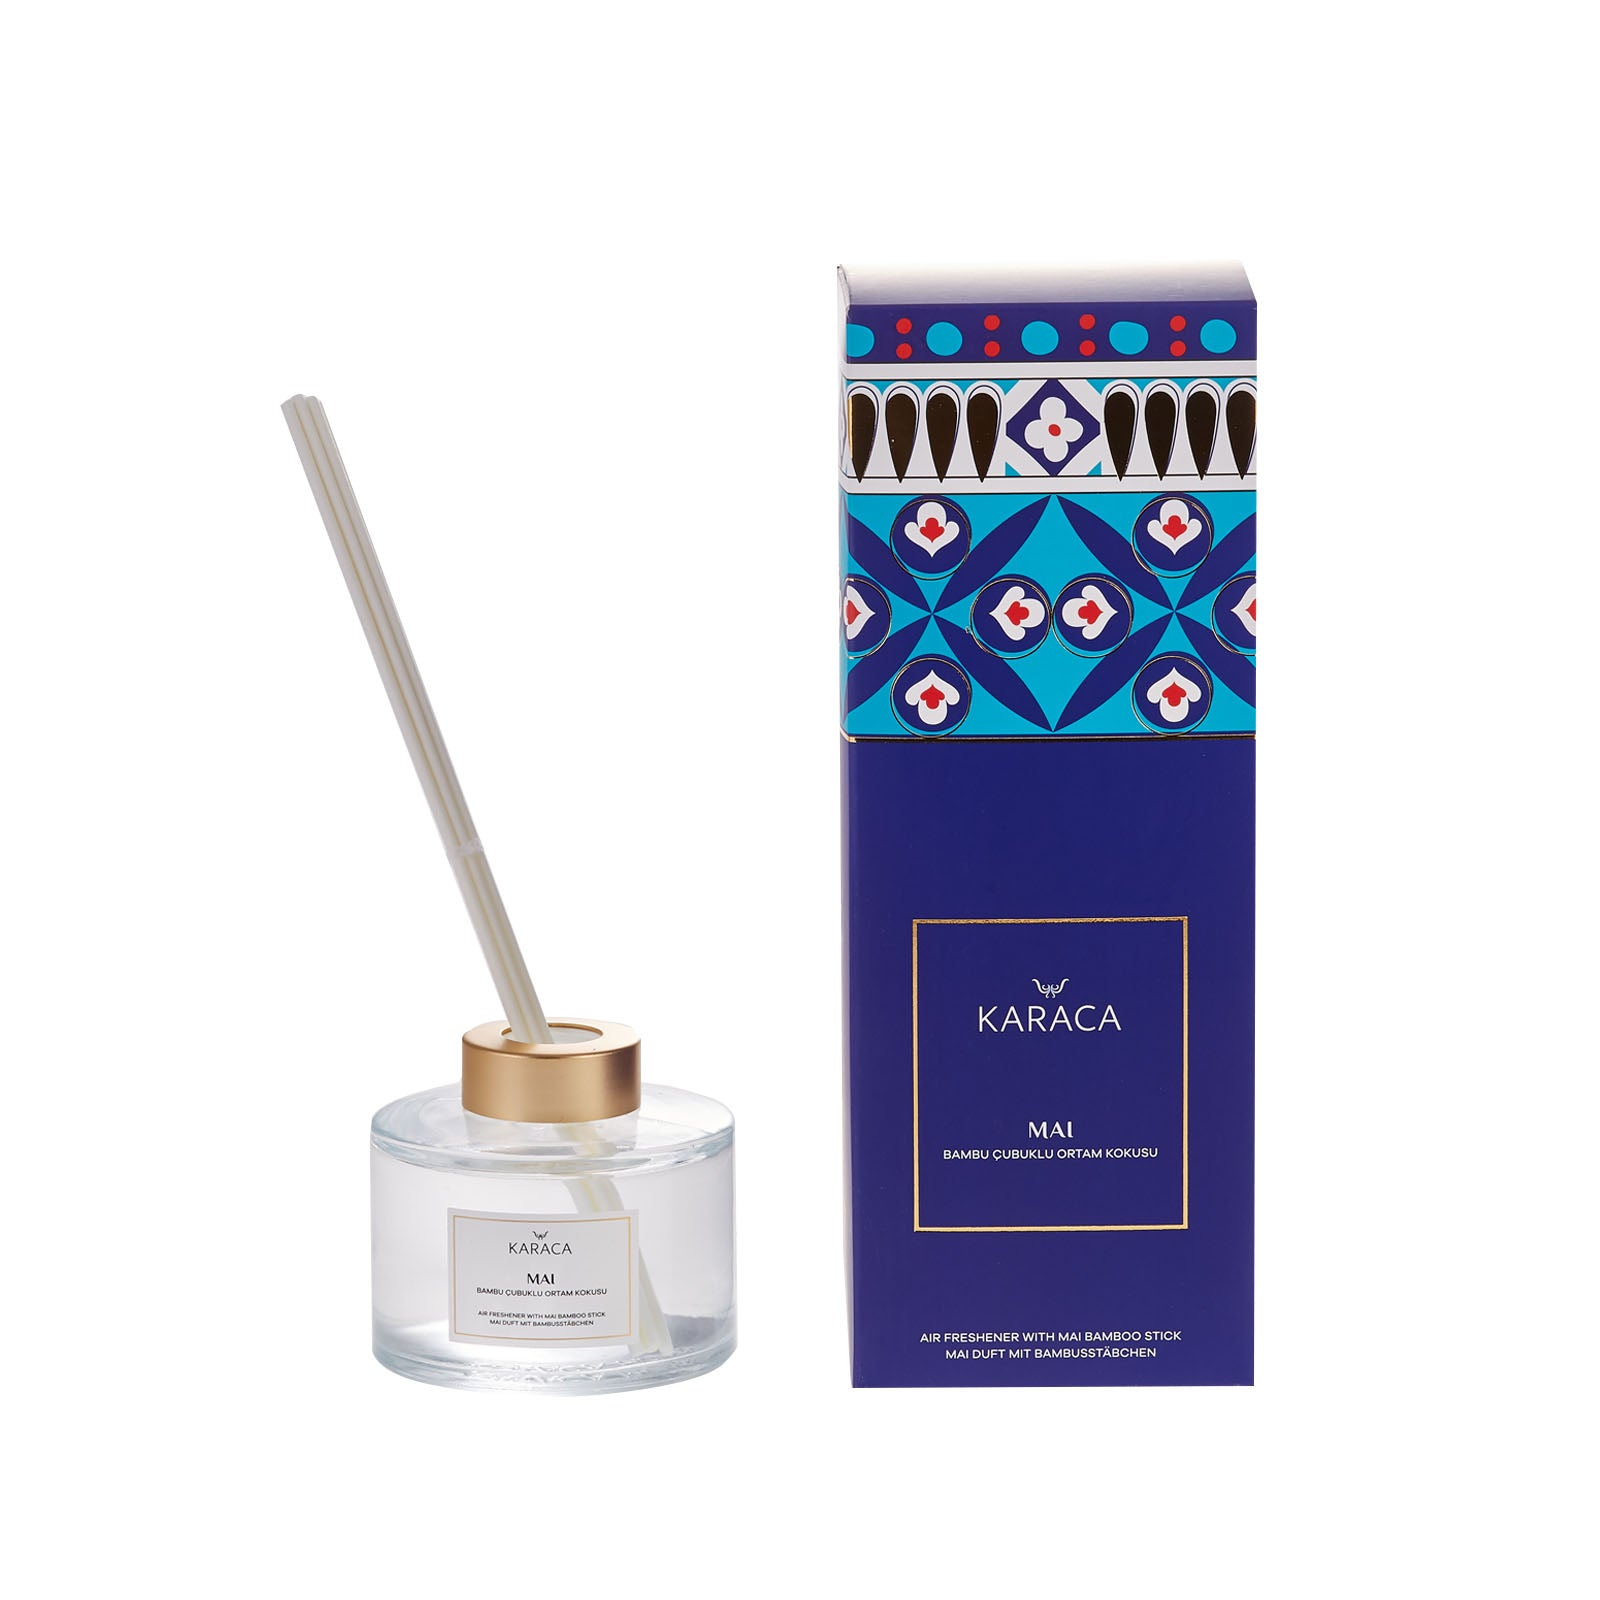 Karaca Mai Bamboo Sticks Ambient Fragrance 153.19.01.1460